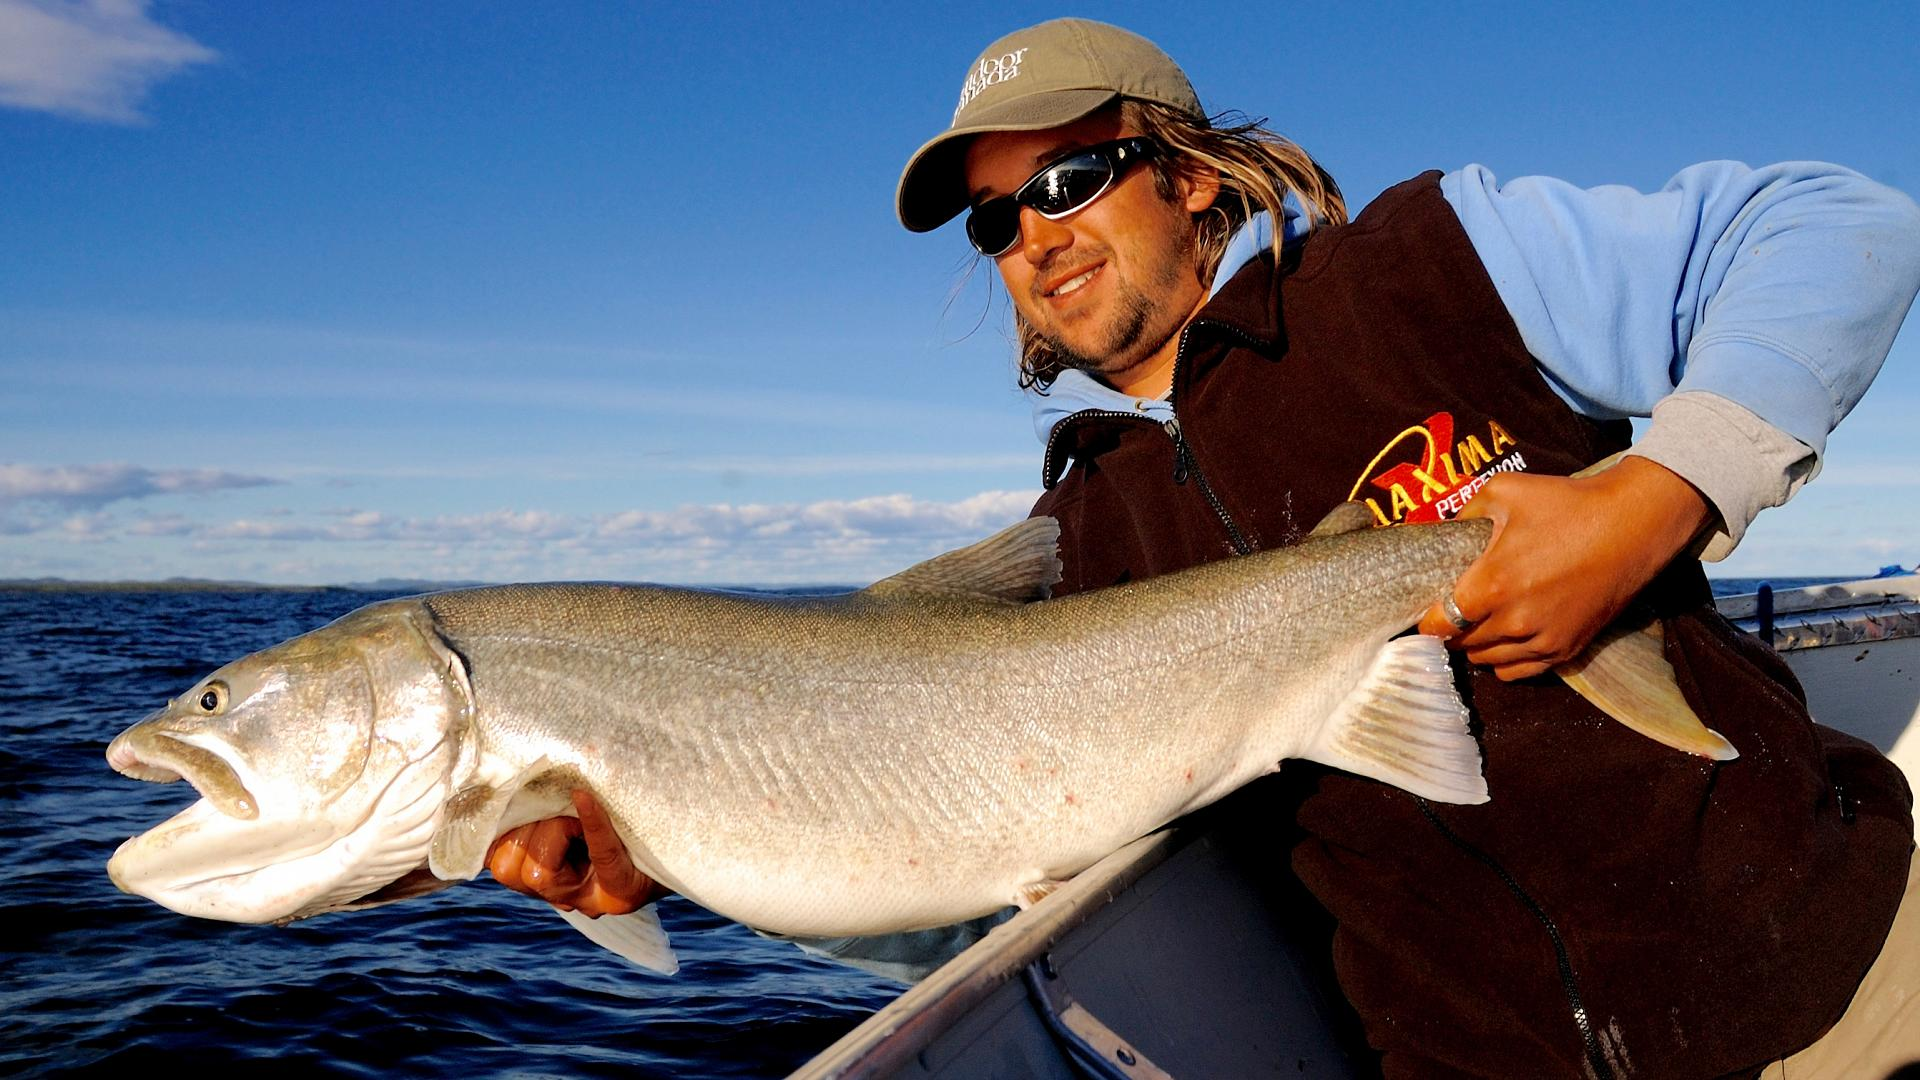 Going after summer lake trout? Put away the trolling gear